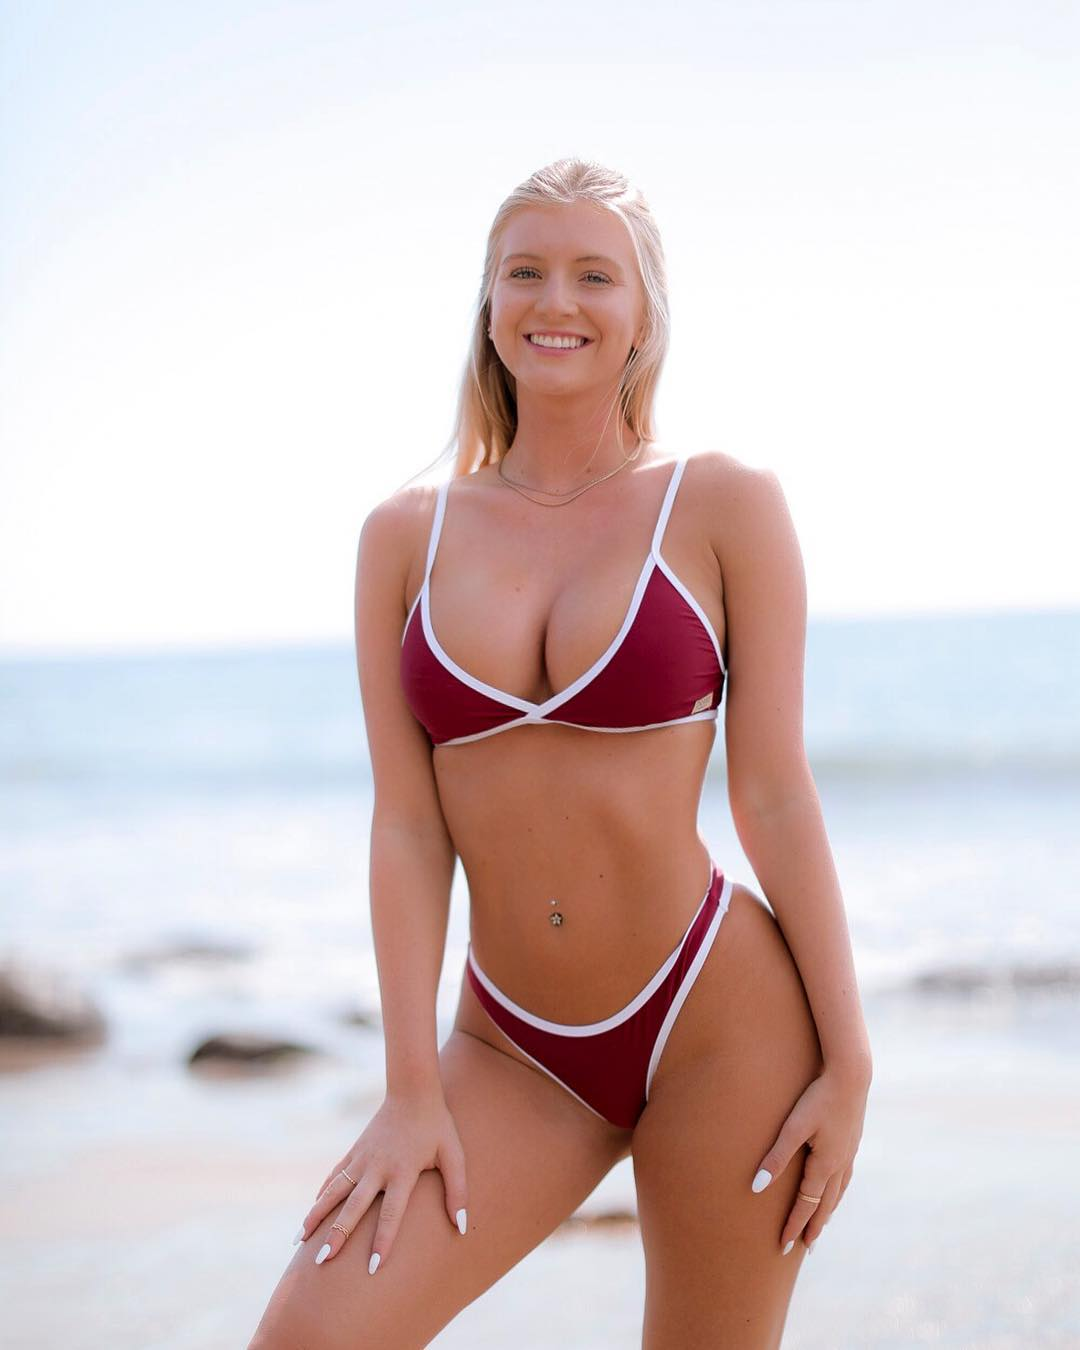 Alexis Clark with a freshly-looking body